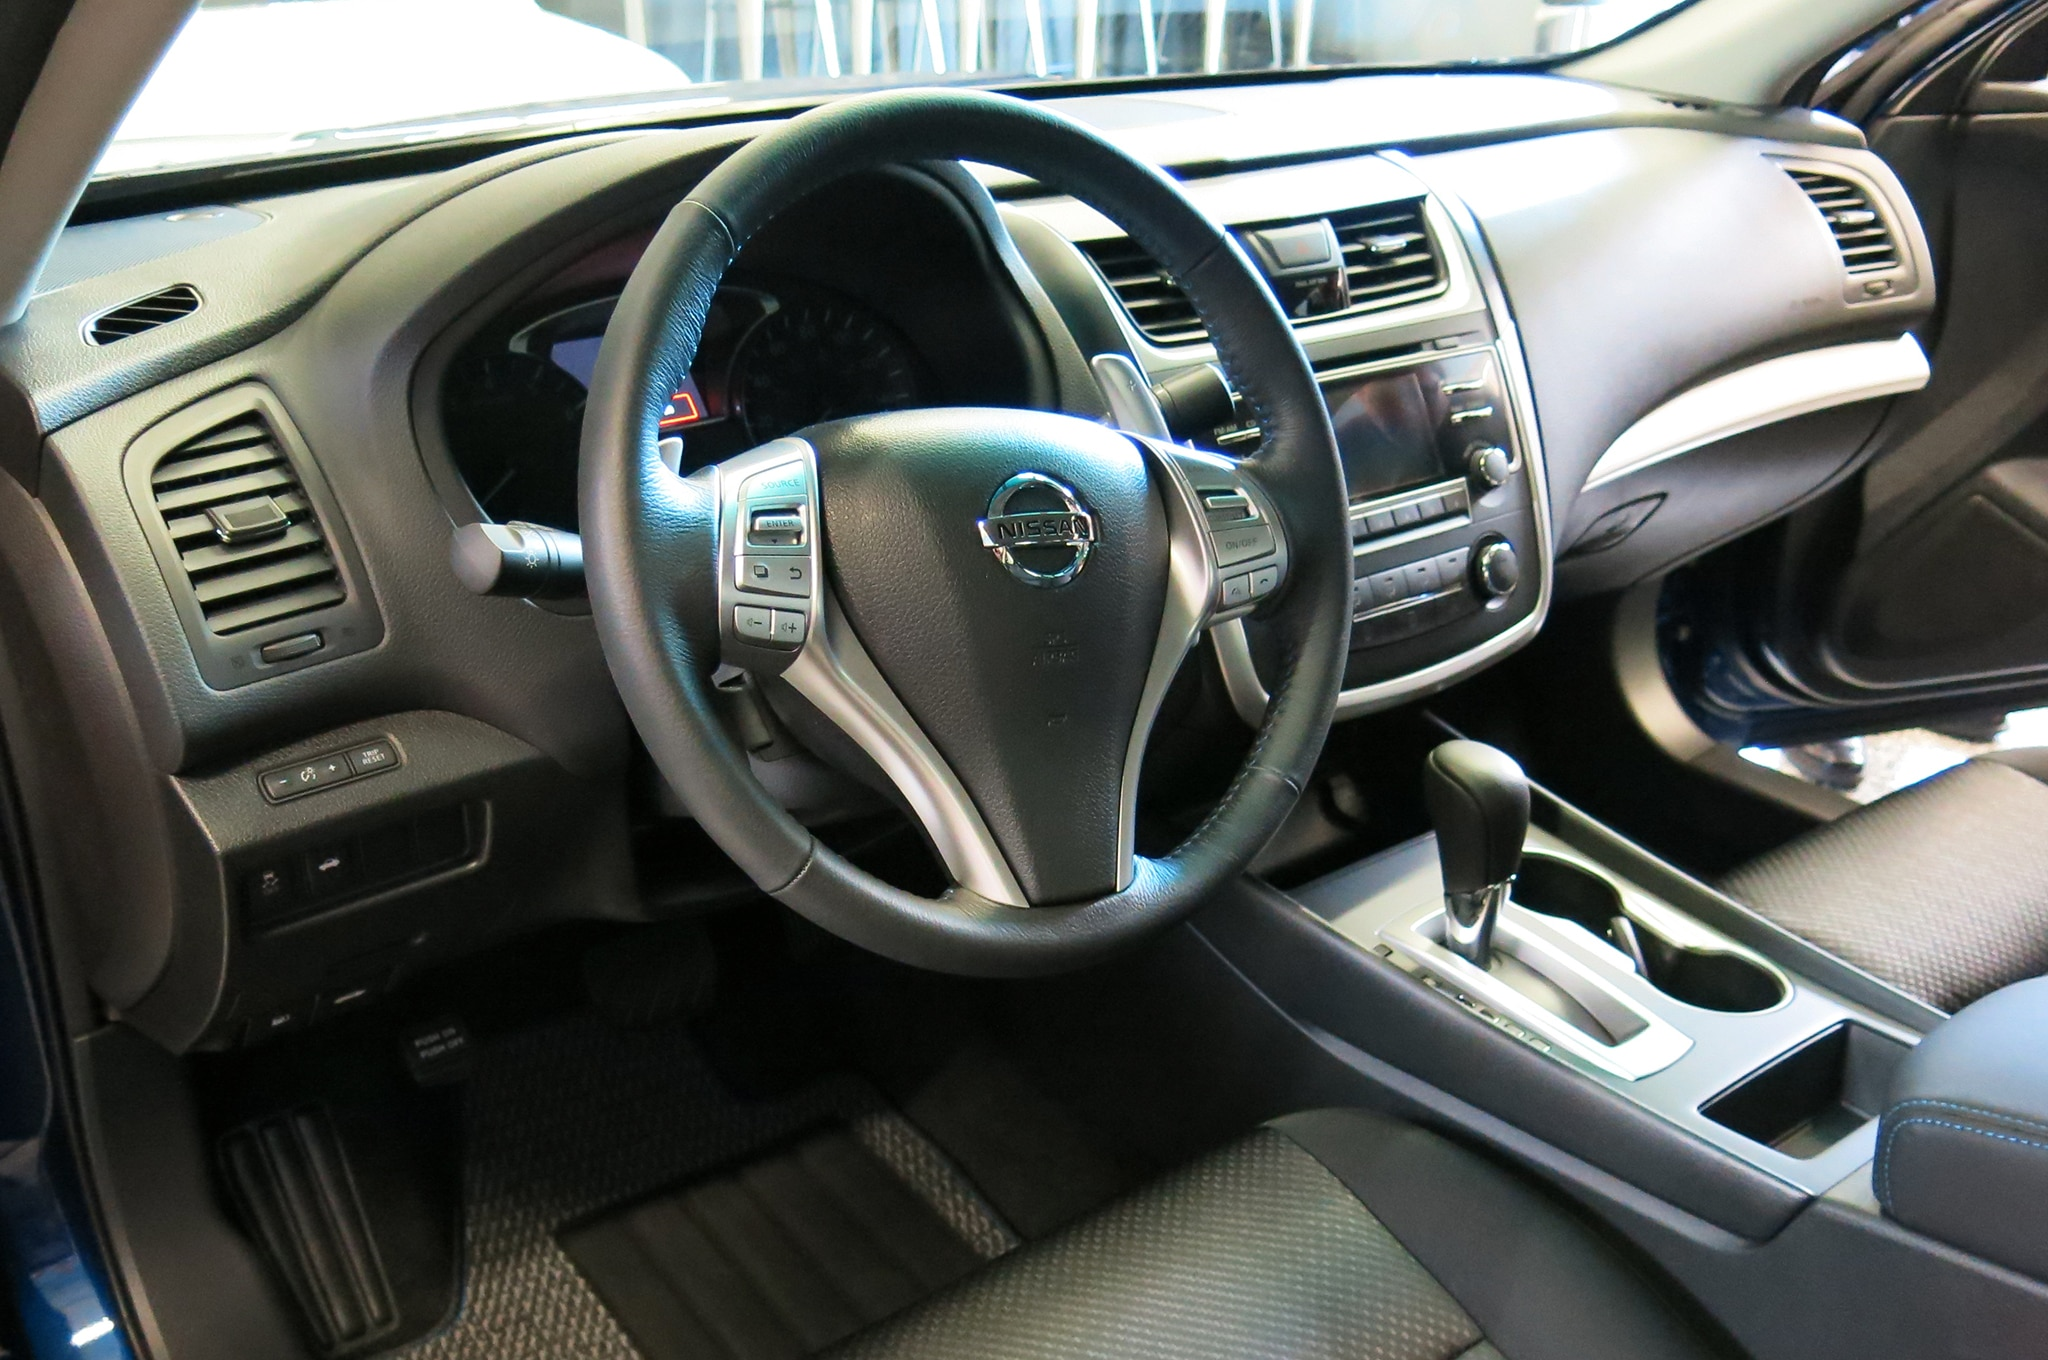 2006 nissan altima interior images hd cars wallpaper 5 things to know about the 2016 nissan altima 444 vanachro images vanachro Image collections